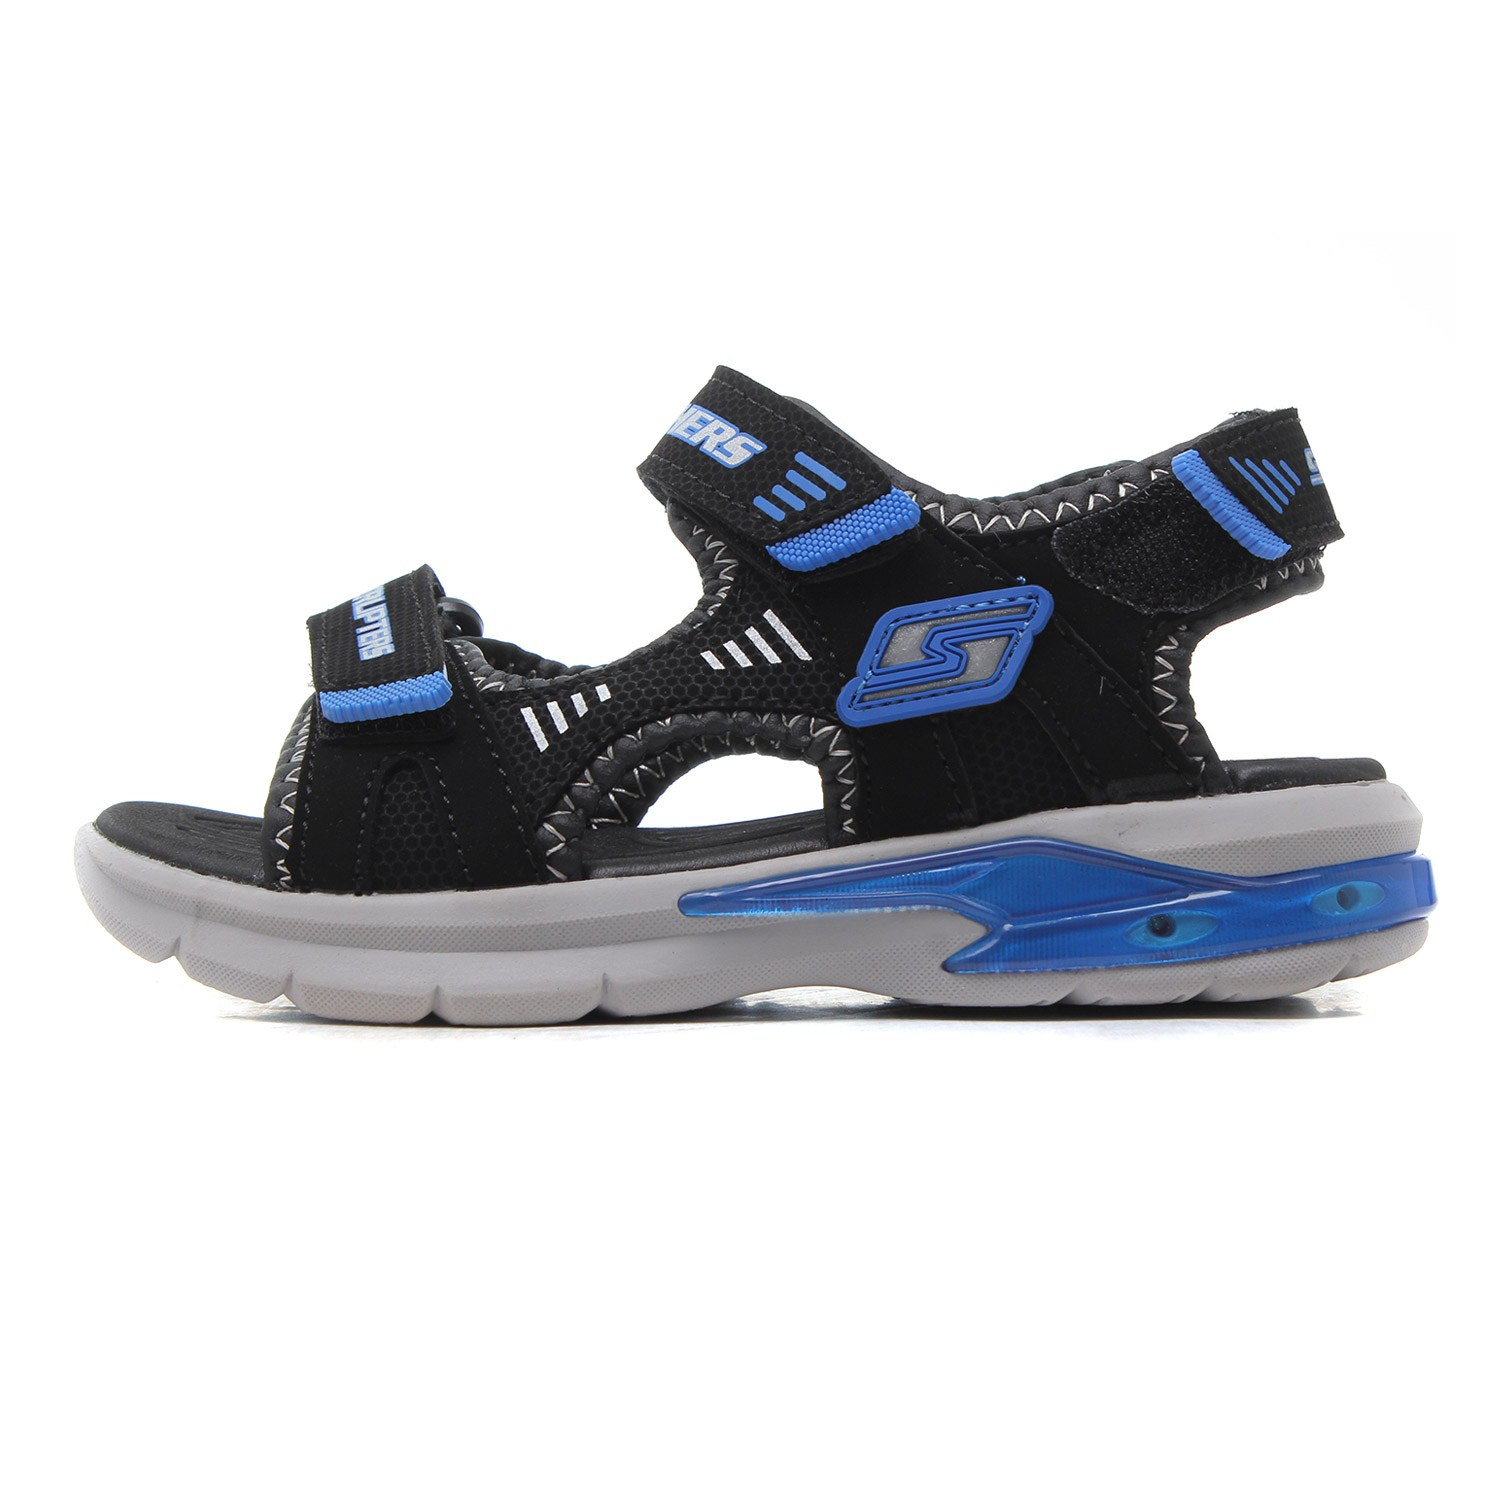 6a602bf566fc4 Skechers Skechers big boys sandals new classic breathable lightweight  low-top sneakers 90555L